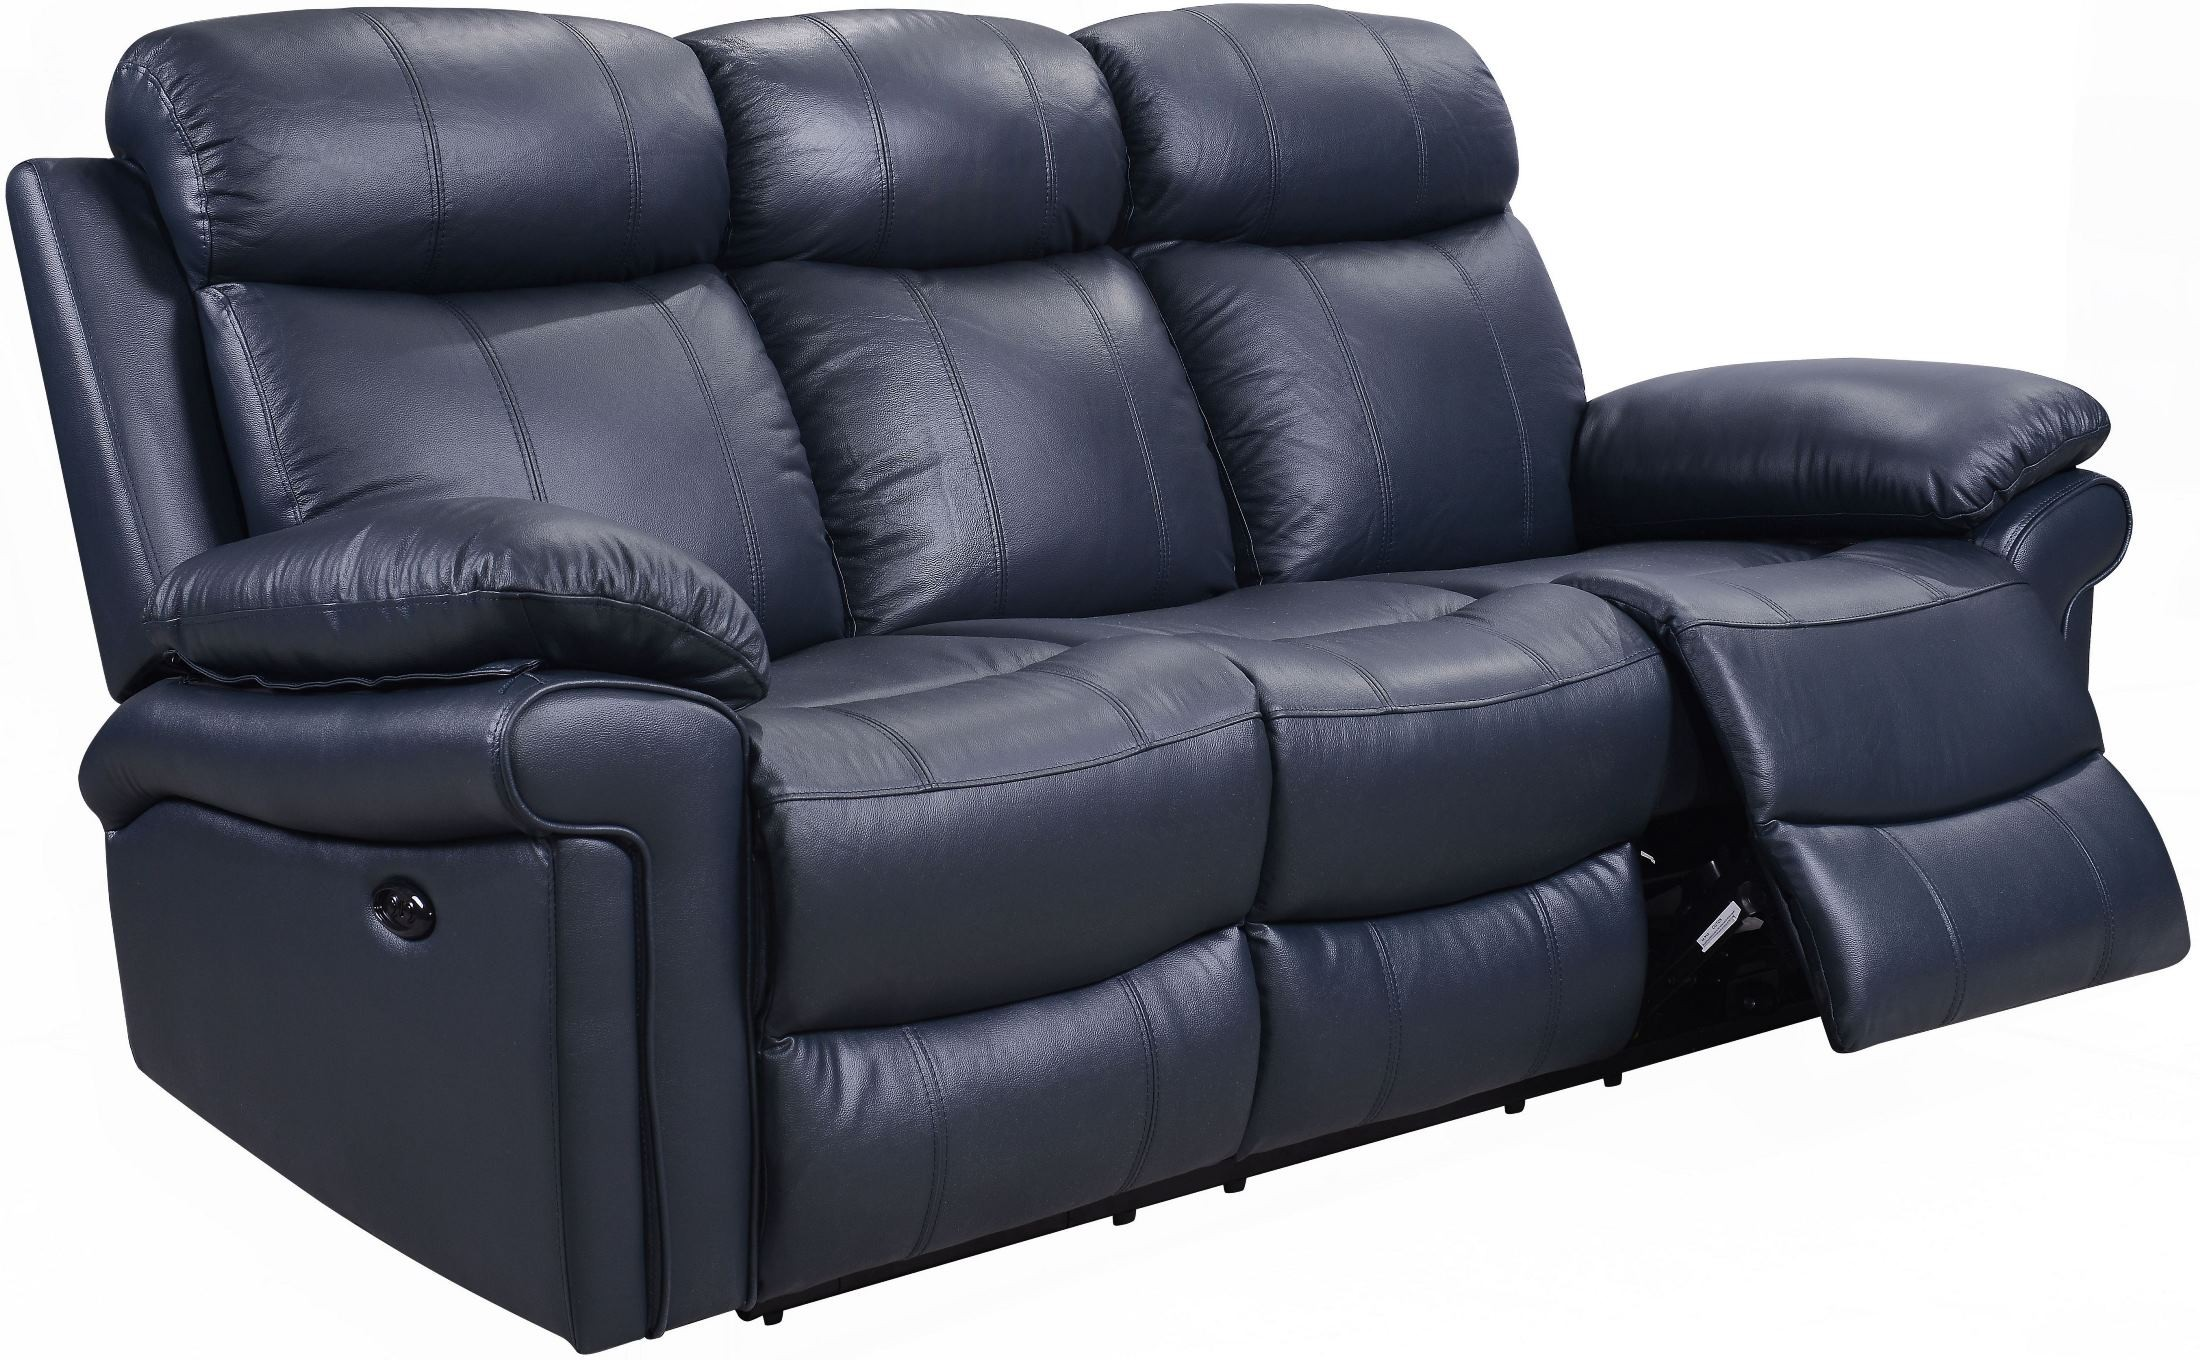 Shae Joplin Blue Leather Power Reclining Sofa from Luxe Leather